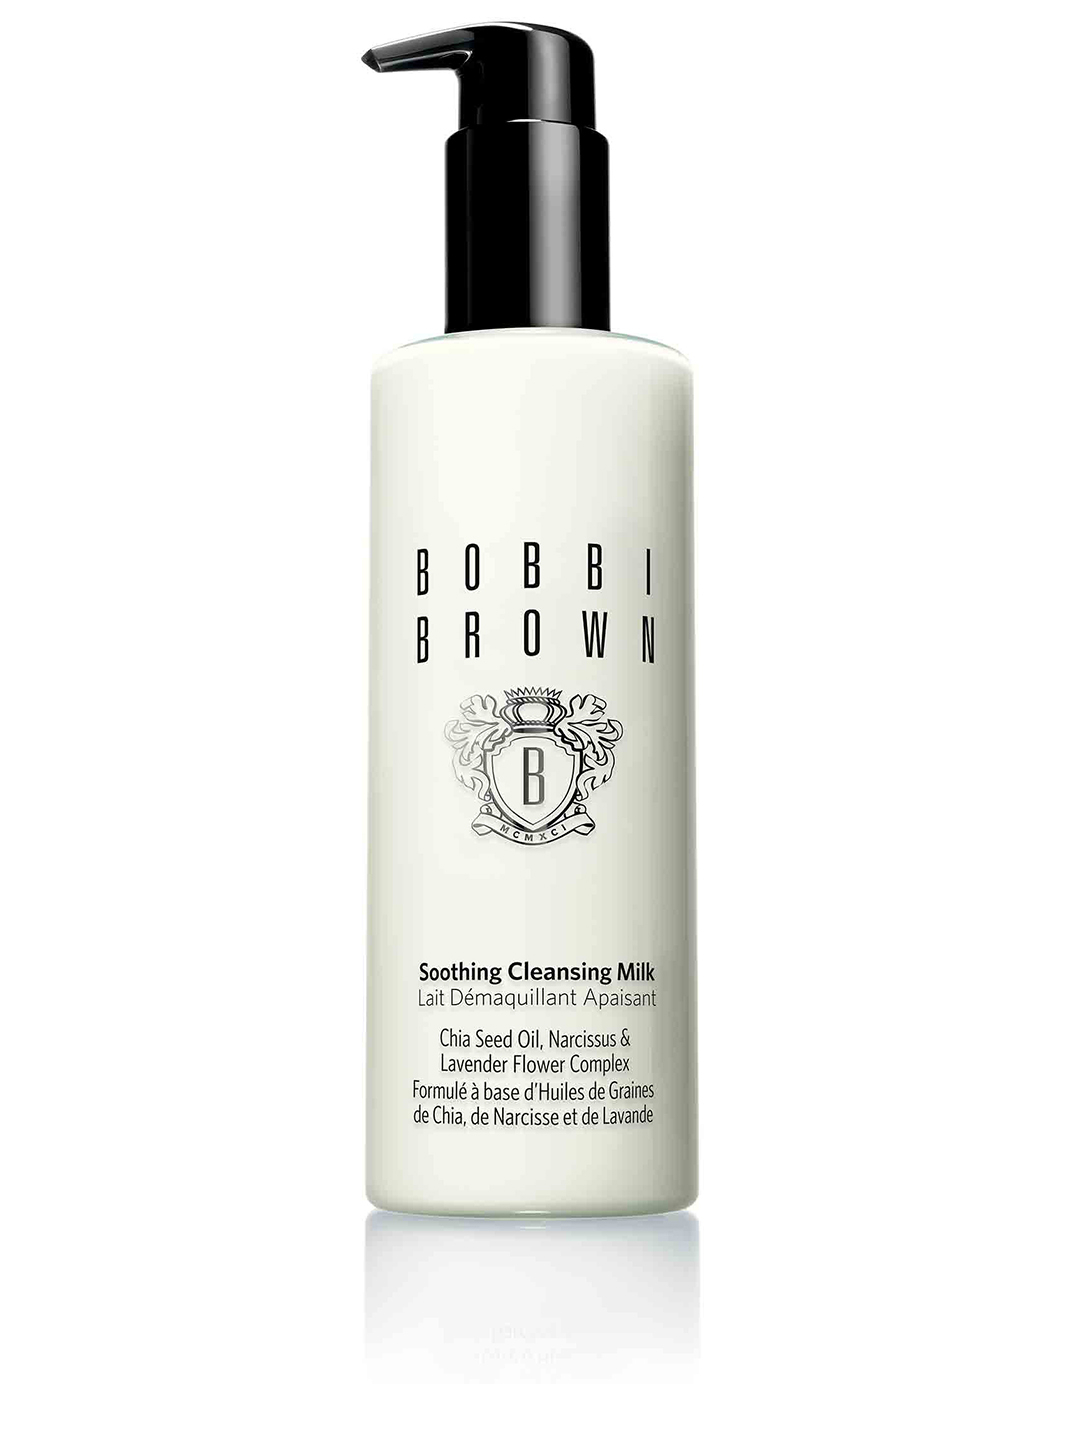 BOBBI BROWN Soothing Cleansing Milk Beauty